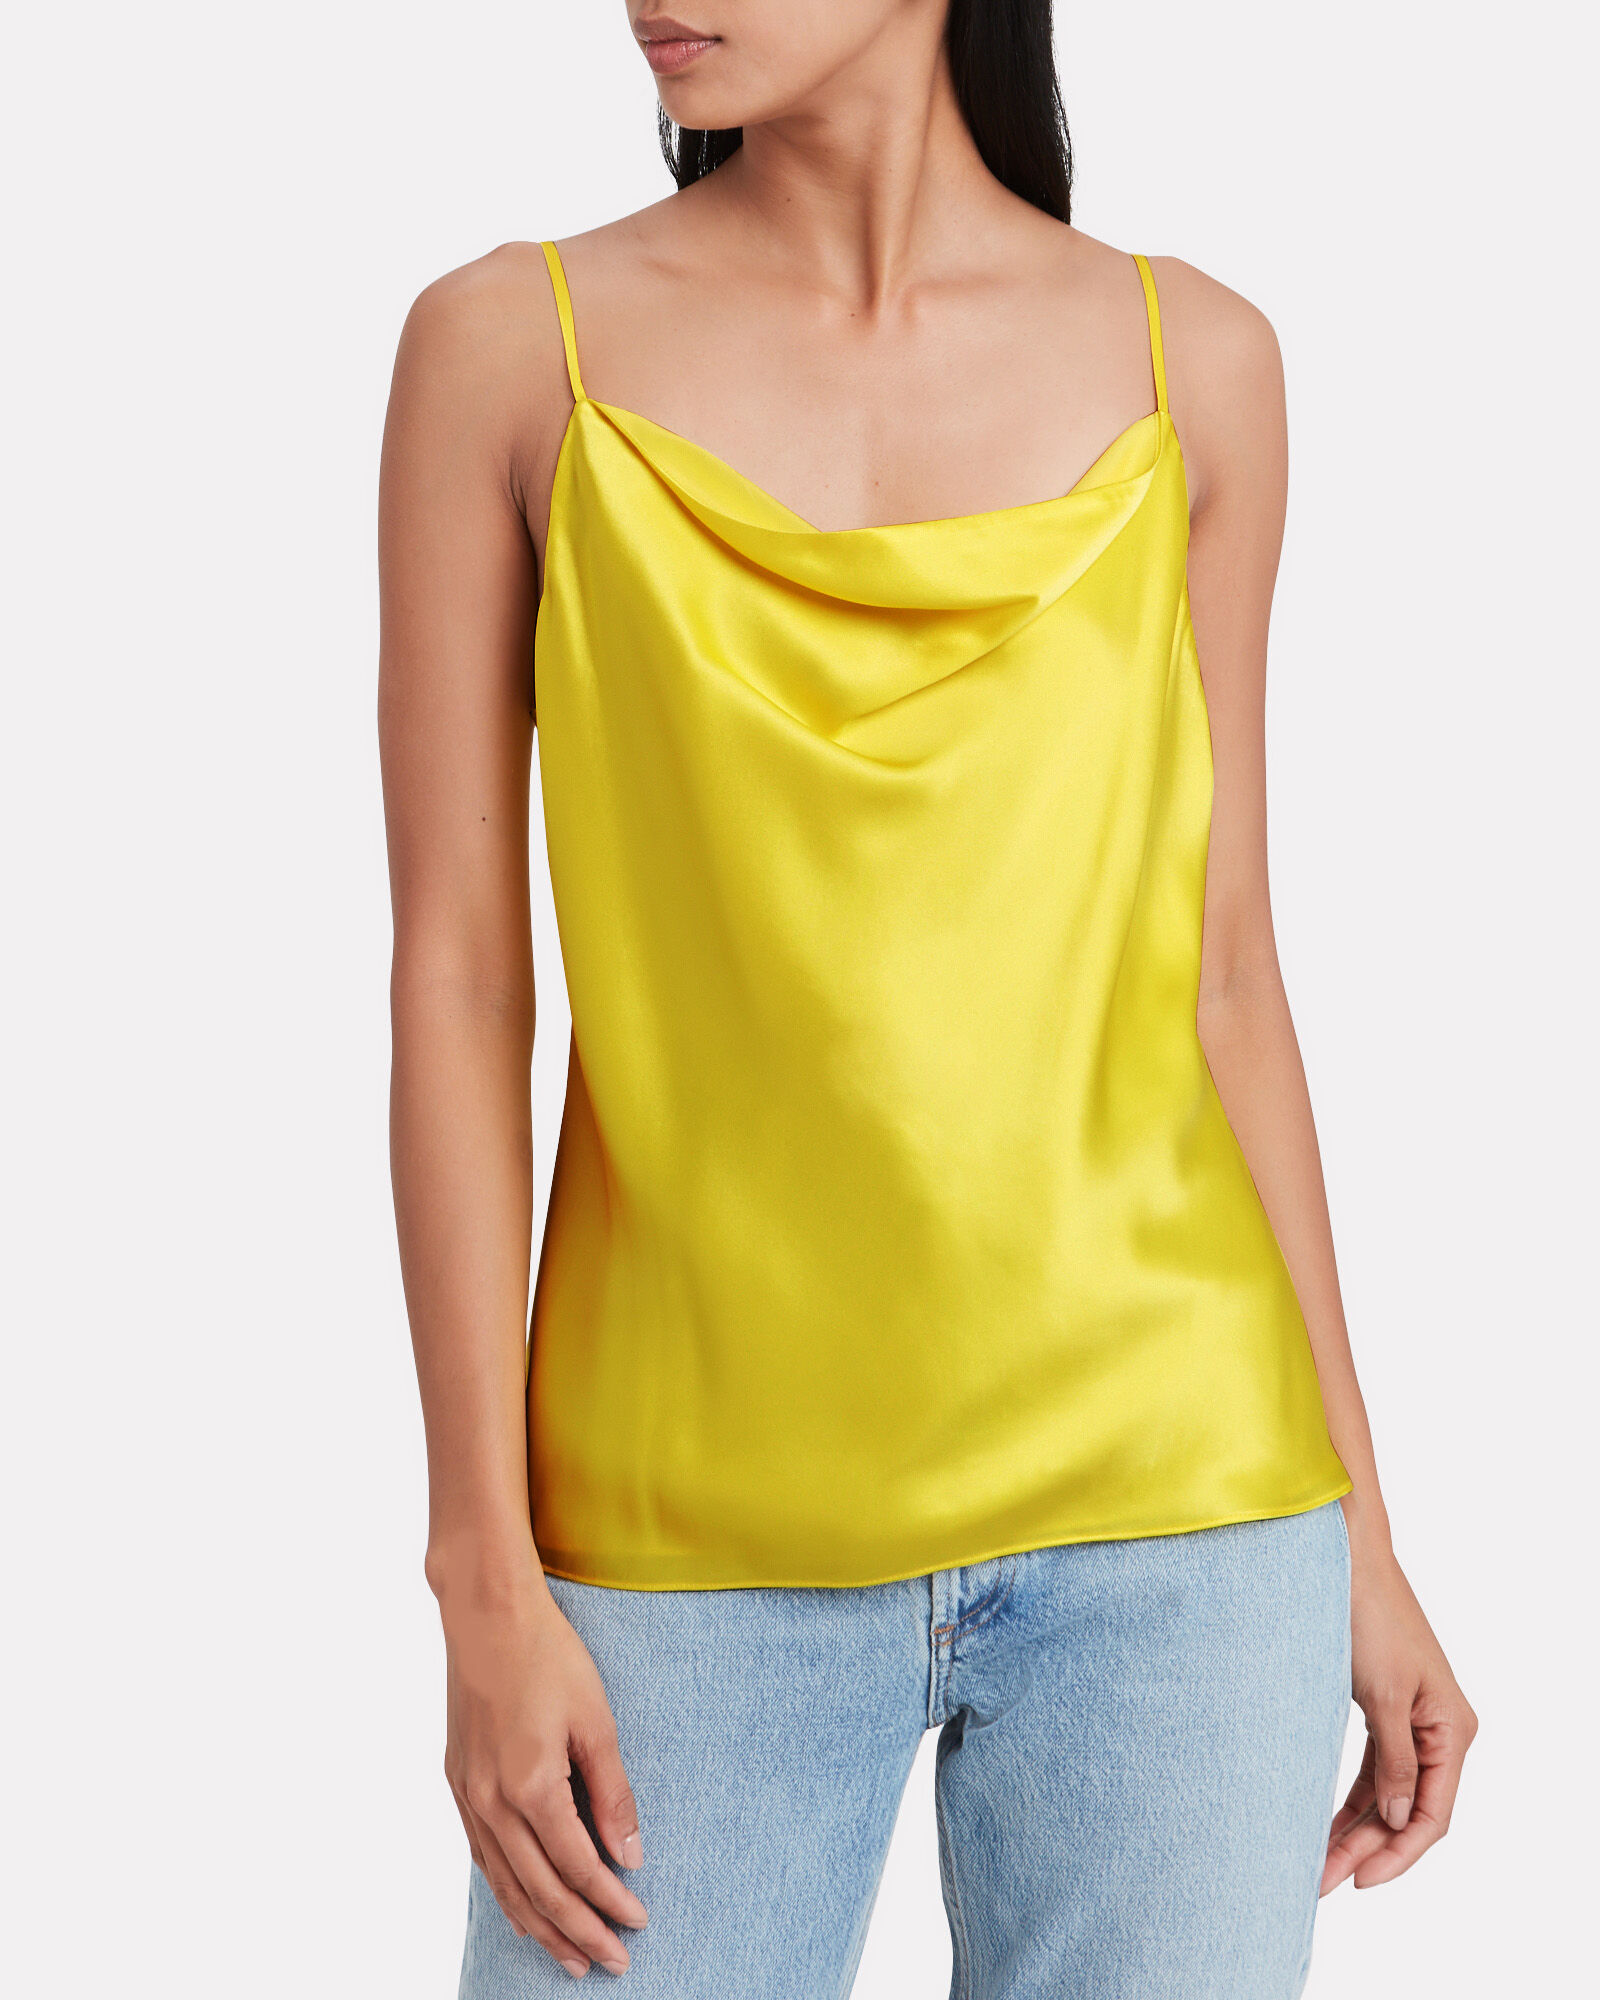 Kay Silk Cowl Neck Camisole, YELLOW, hi-res